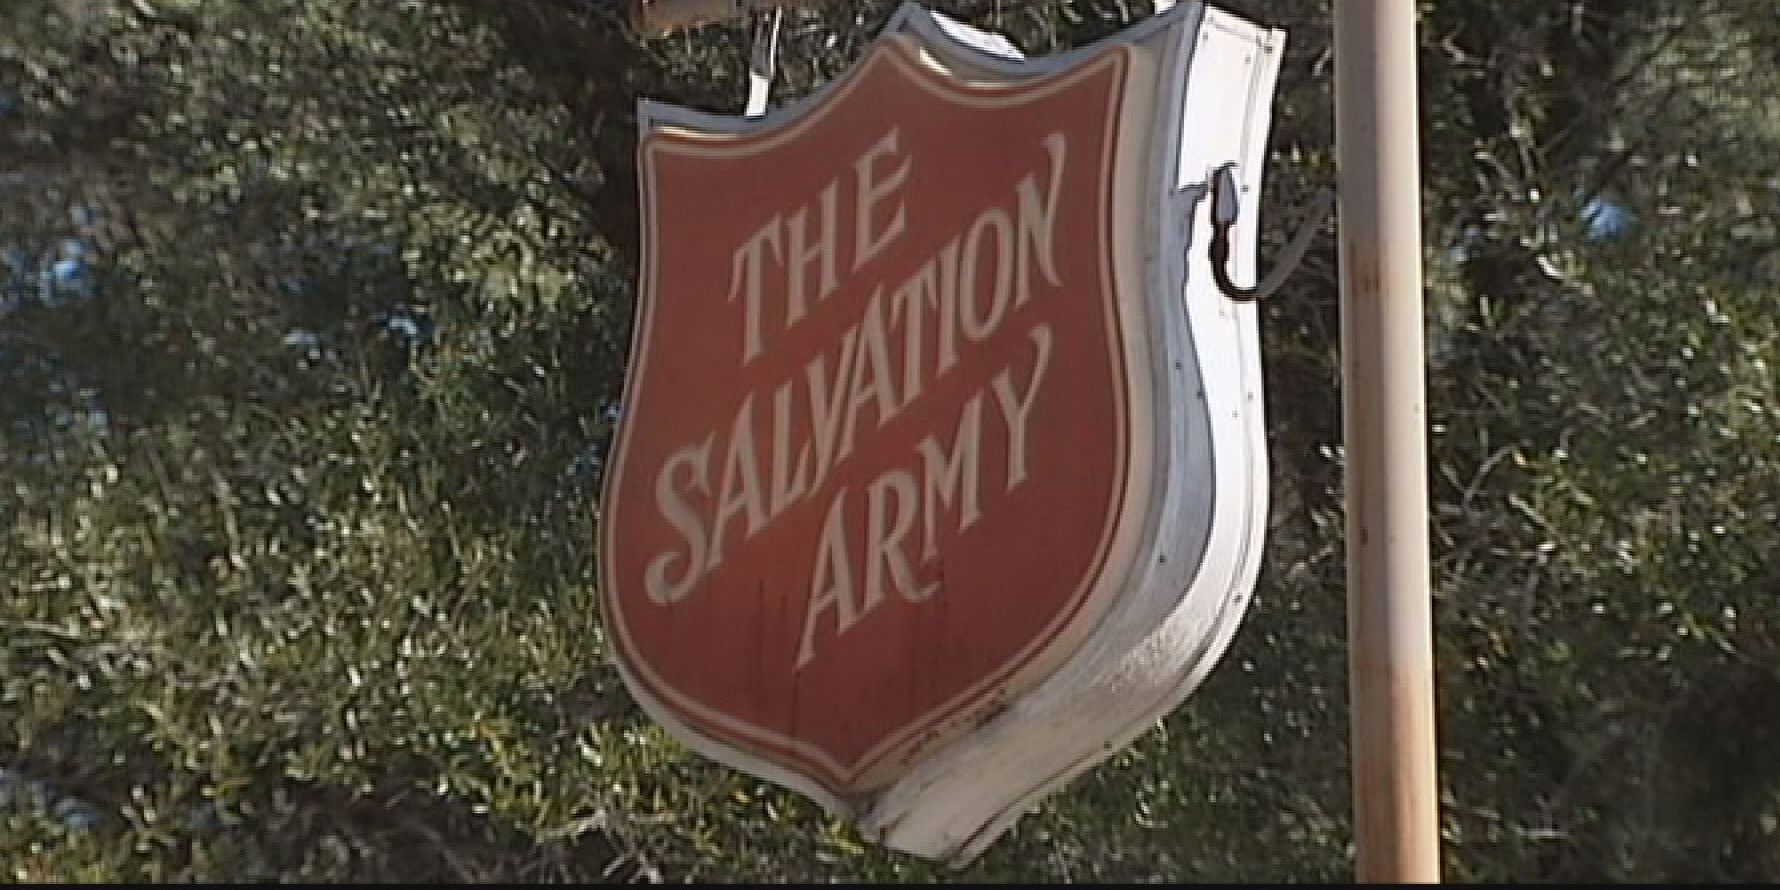 Free Produce Day held by Salvation Army